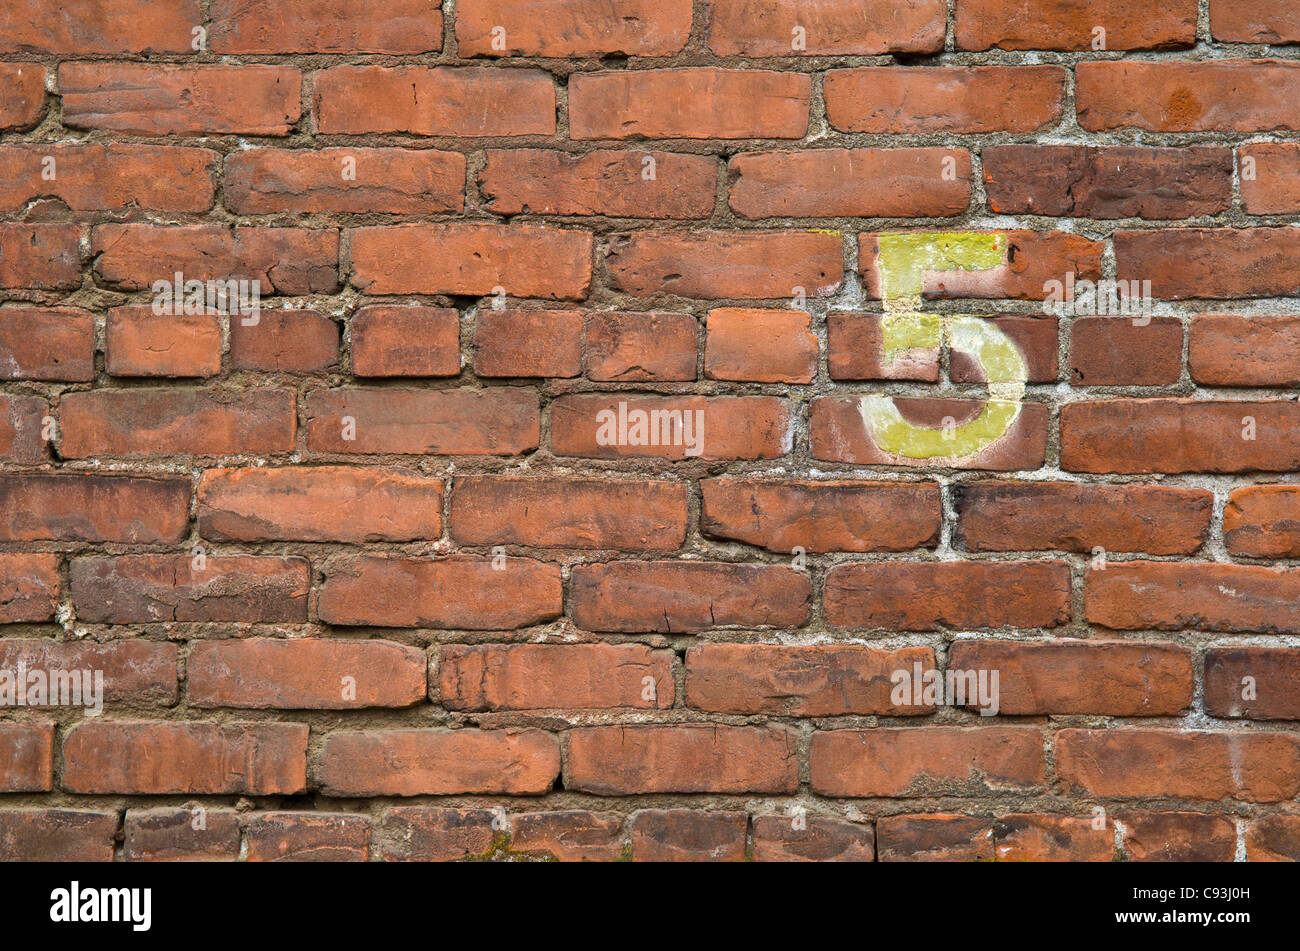 The number 5 painted on a brick wall in the Pearl District of Portland, Oregon. - Stock Image